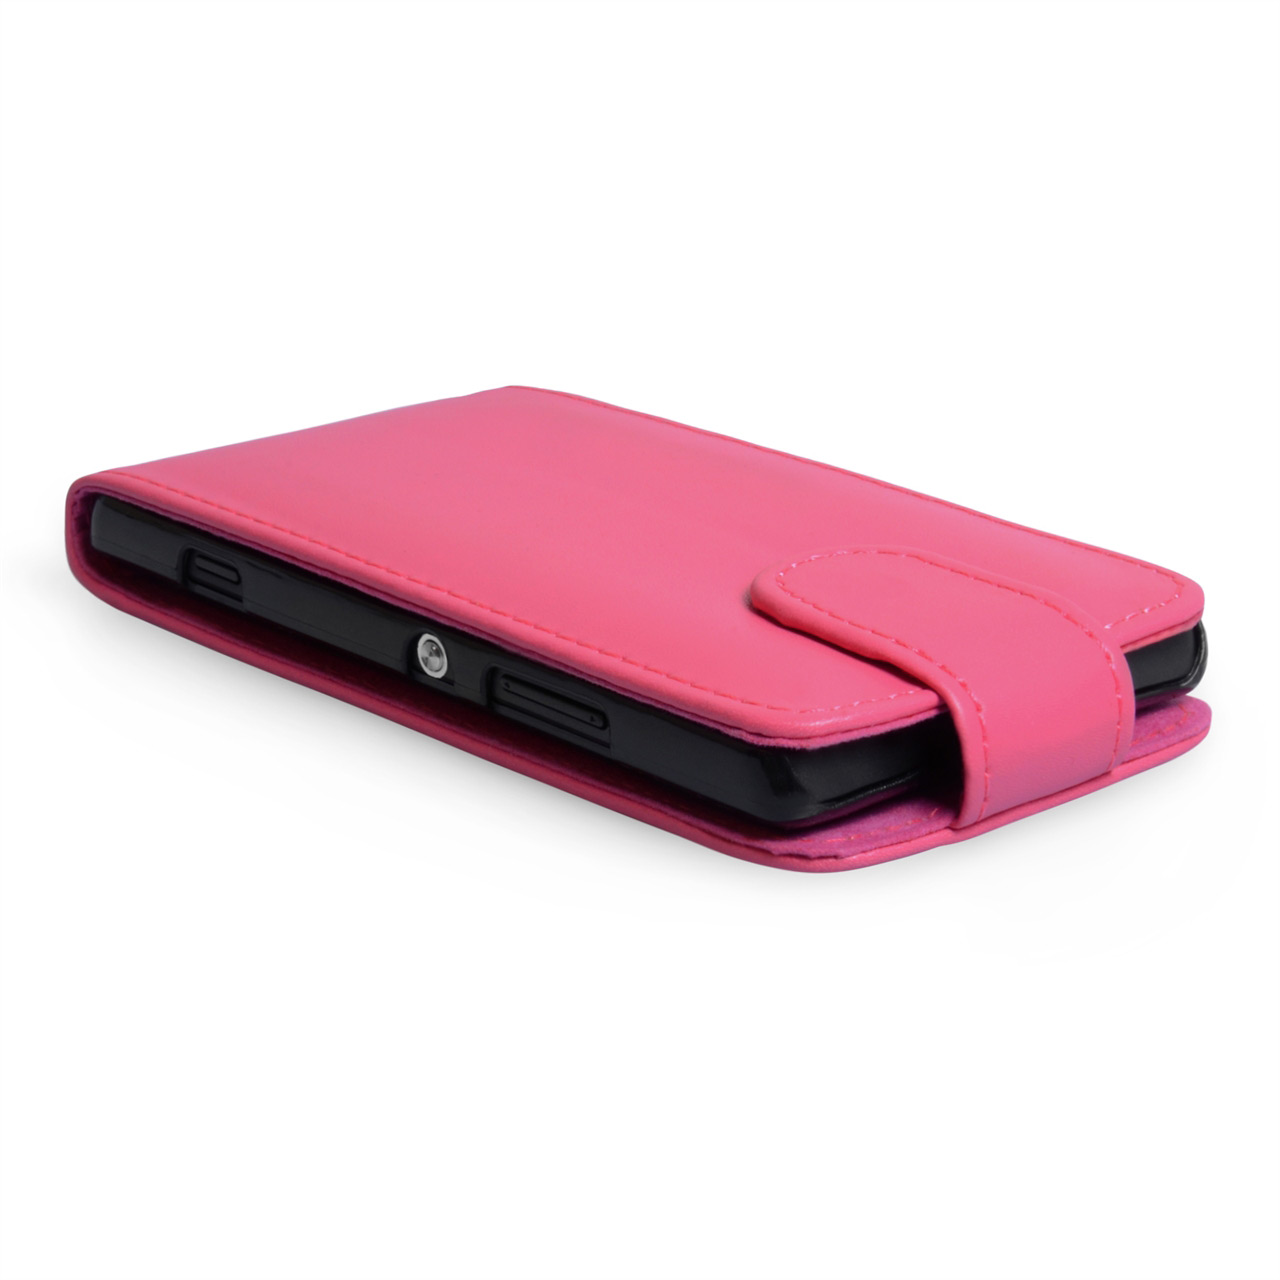 YouSave Accessories Sony Xperia SP Leather-Effect Flip Case - Hot Pink